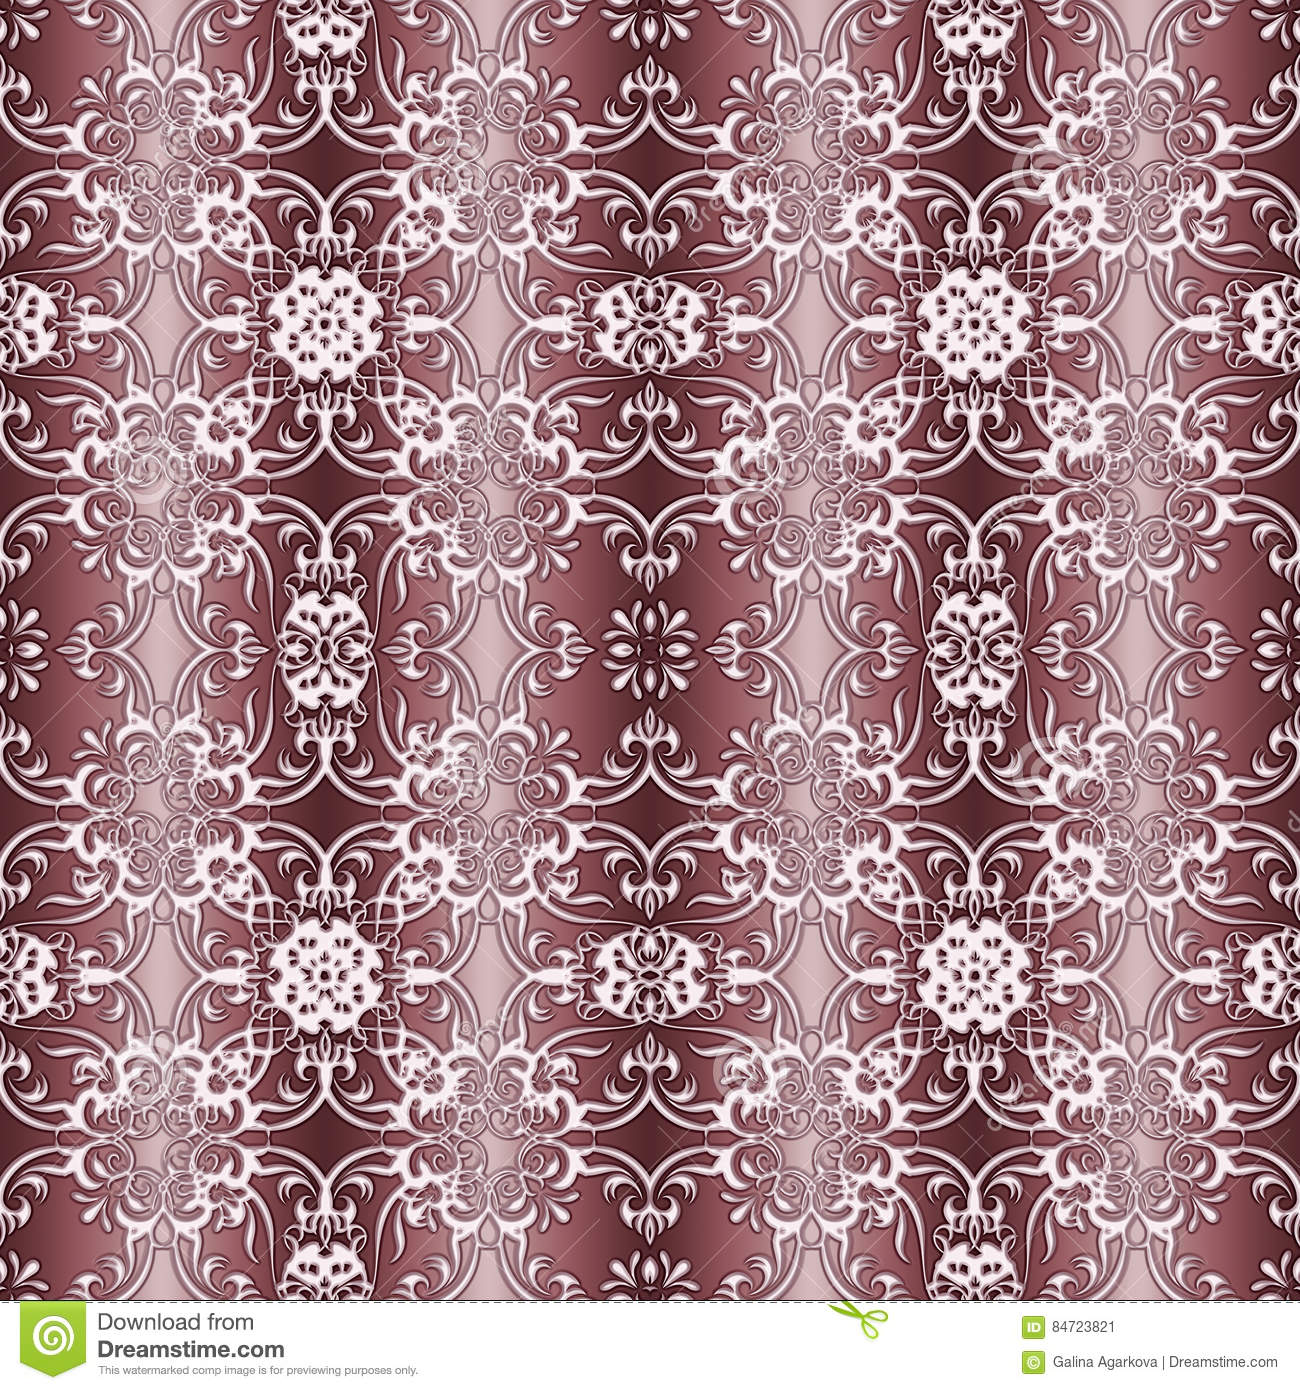 Baroque style seamless pattern royalty free stock for Baroque fashion design